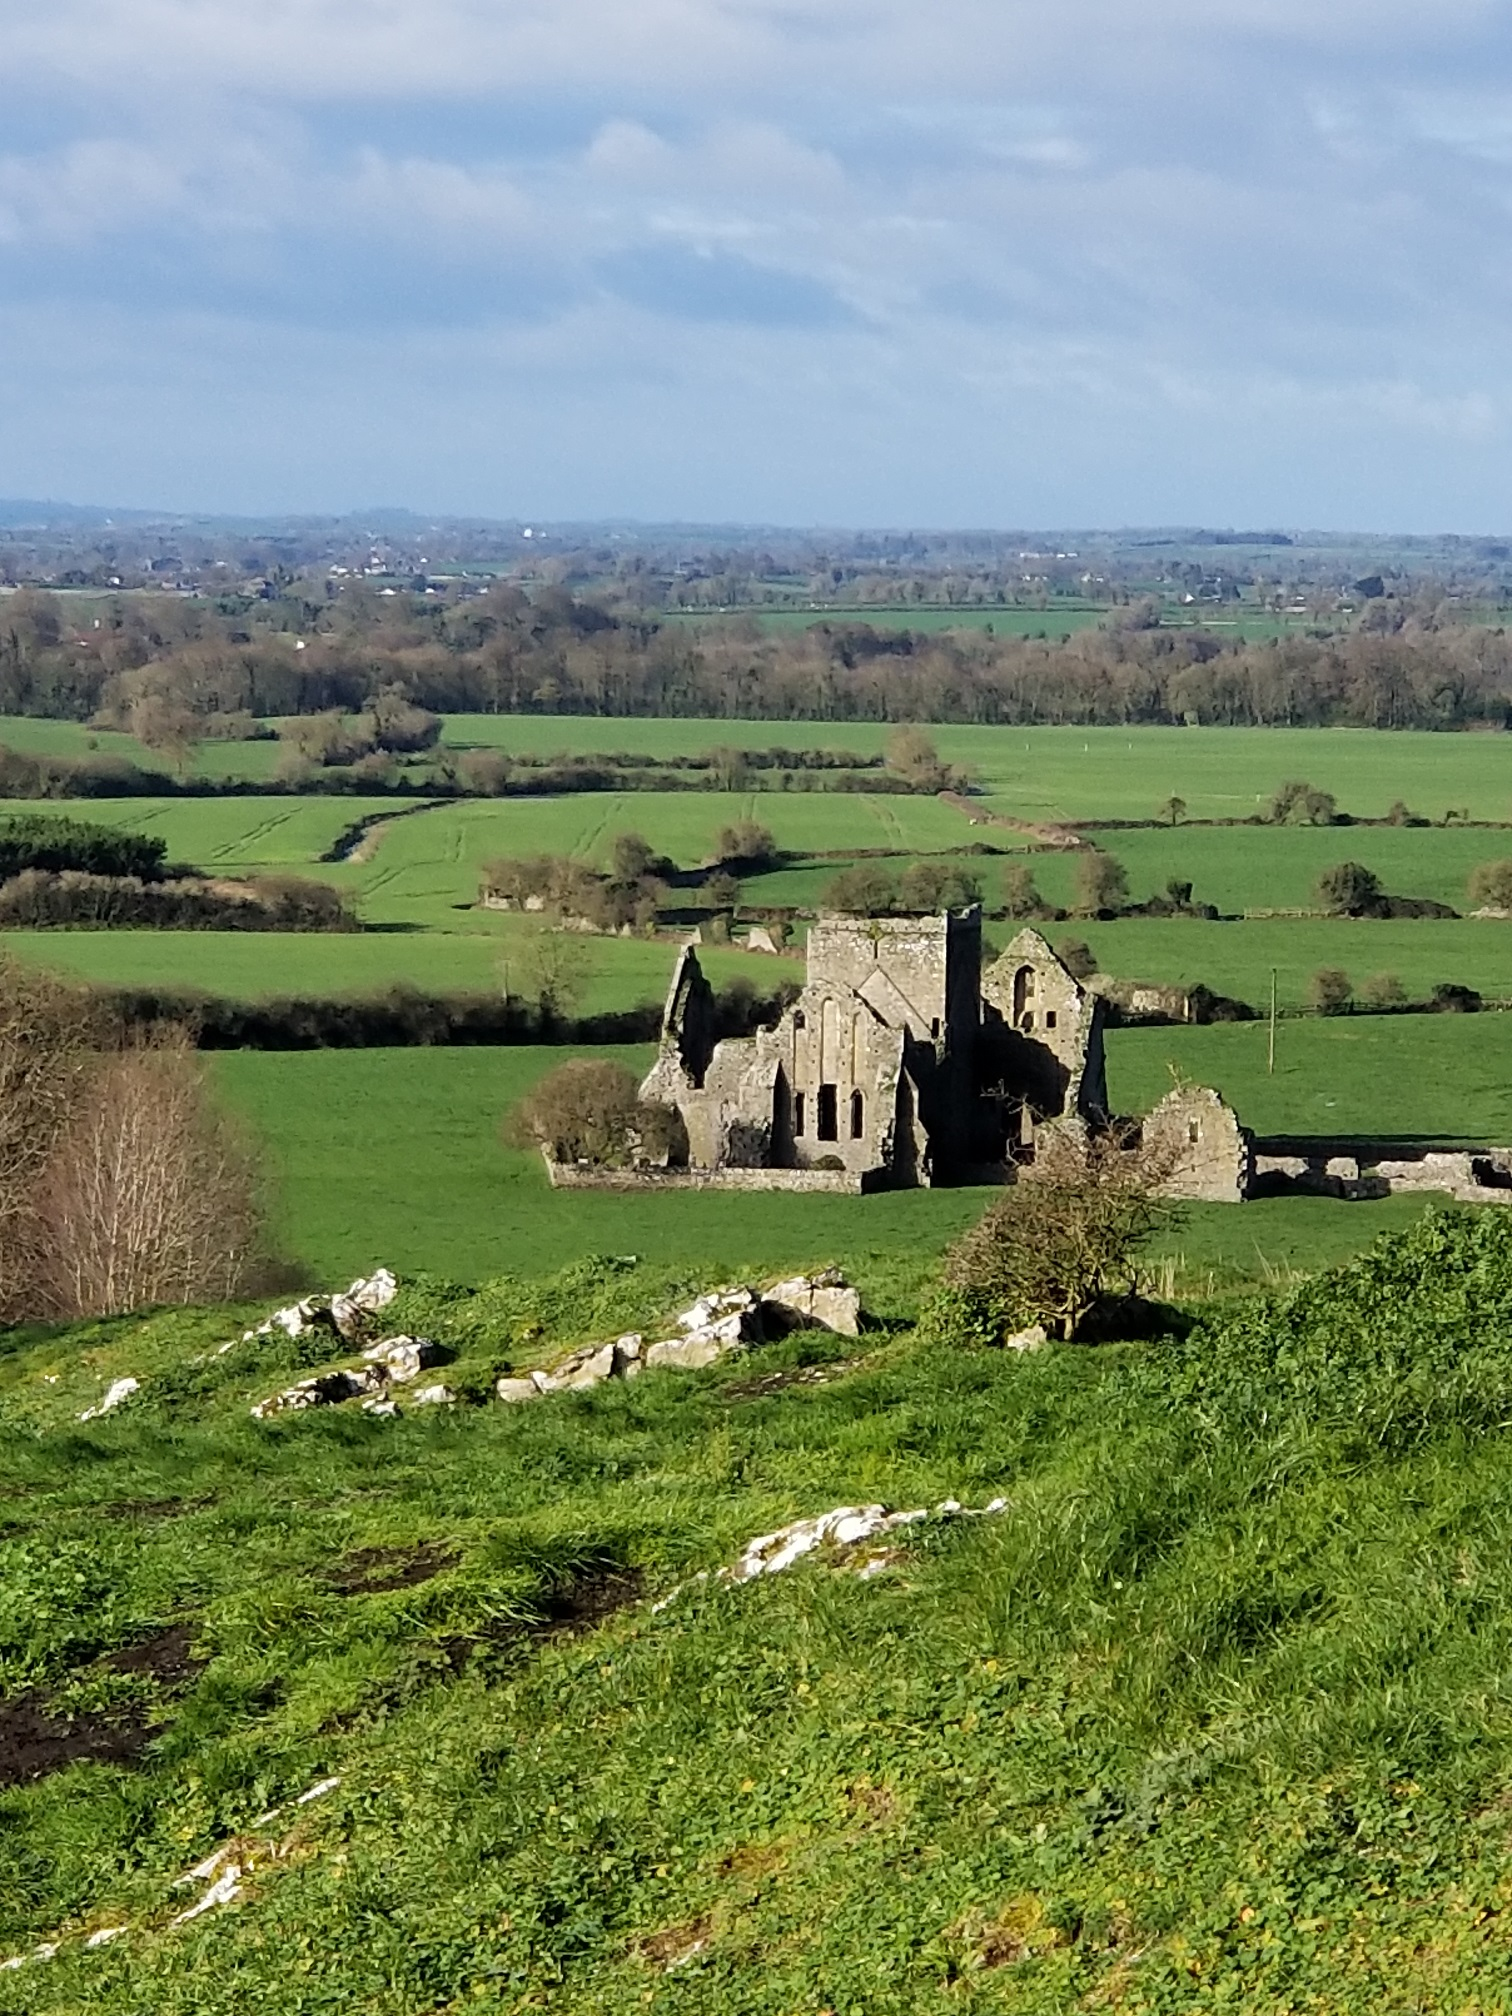 photo of ireland countryside with green grass and an old building